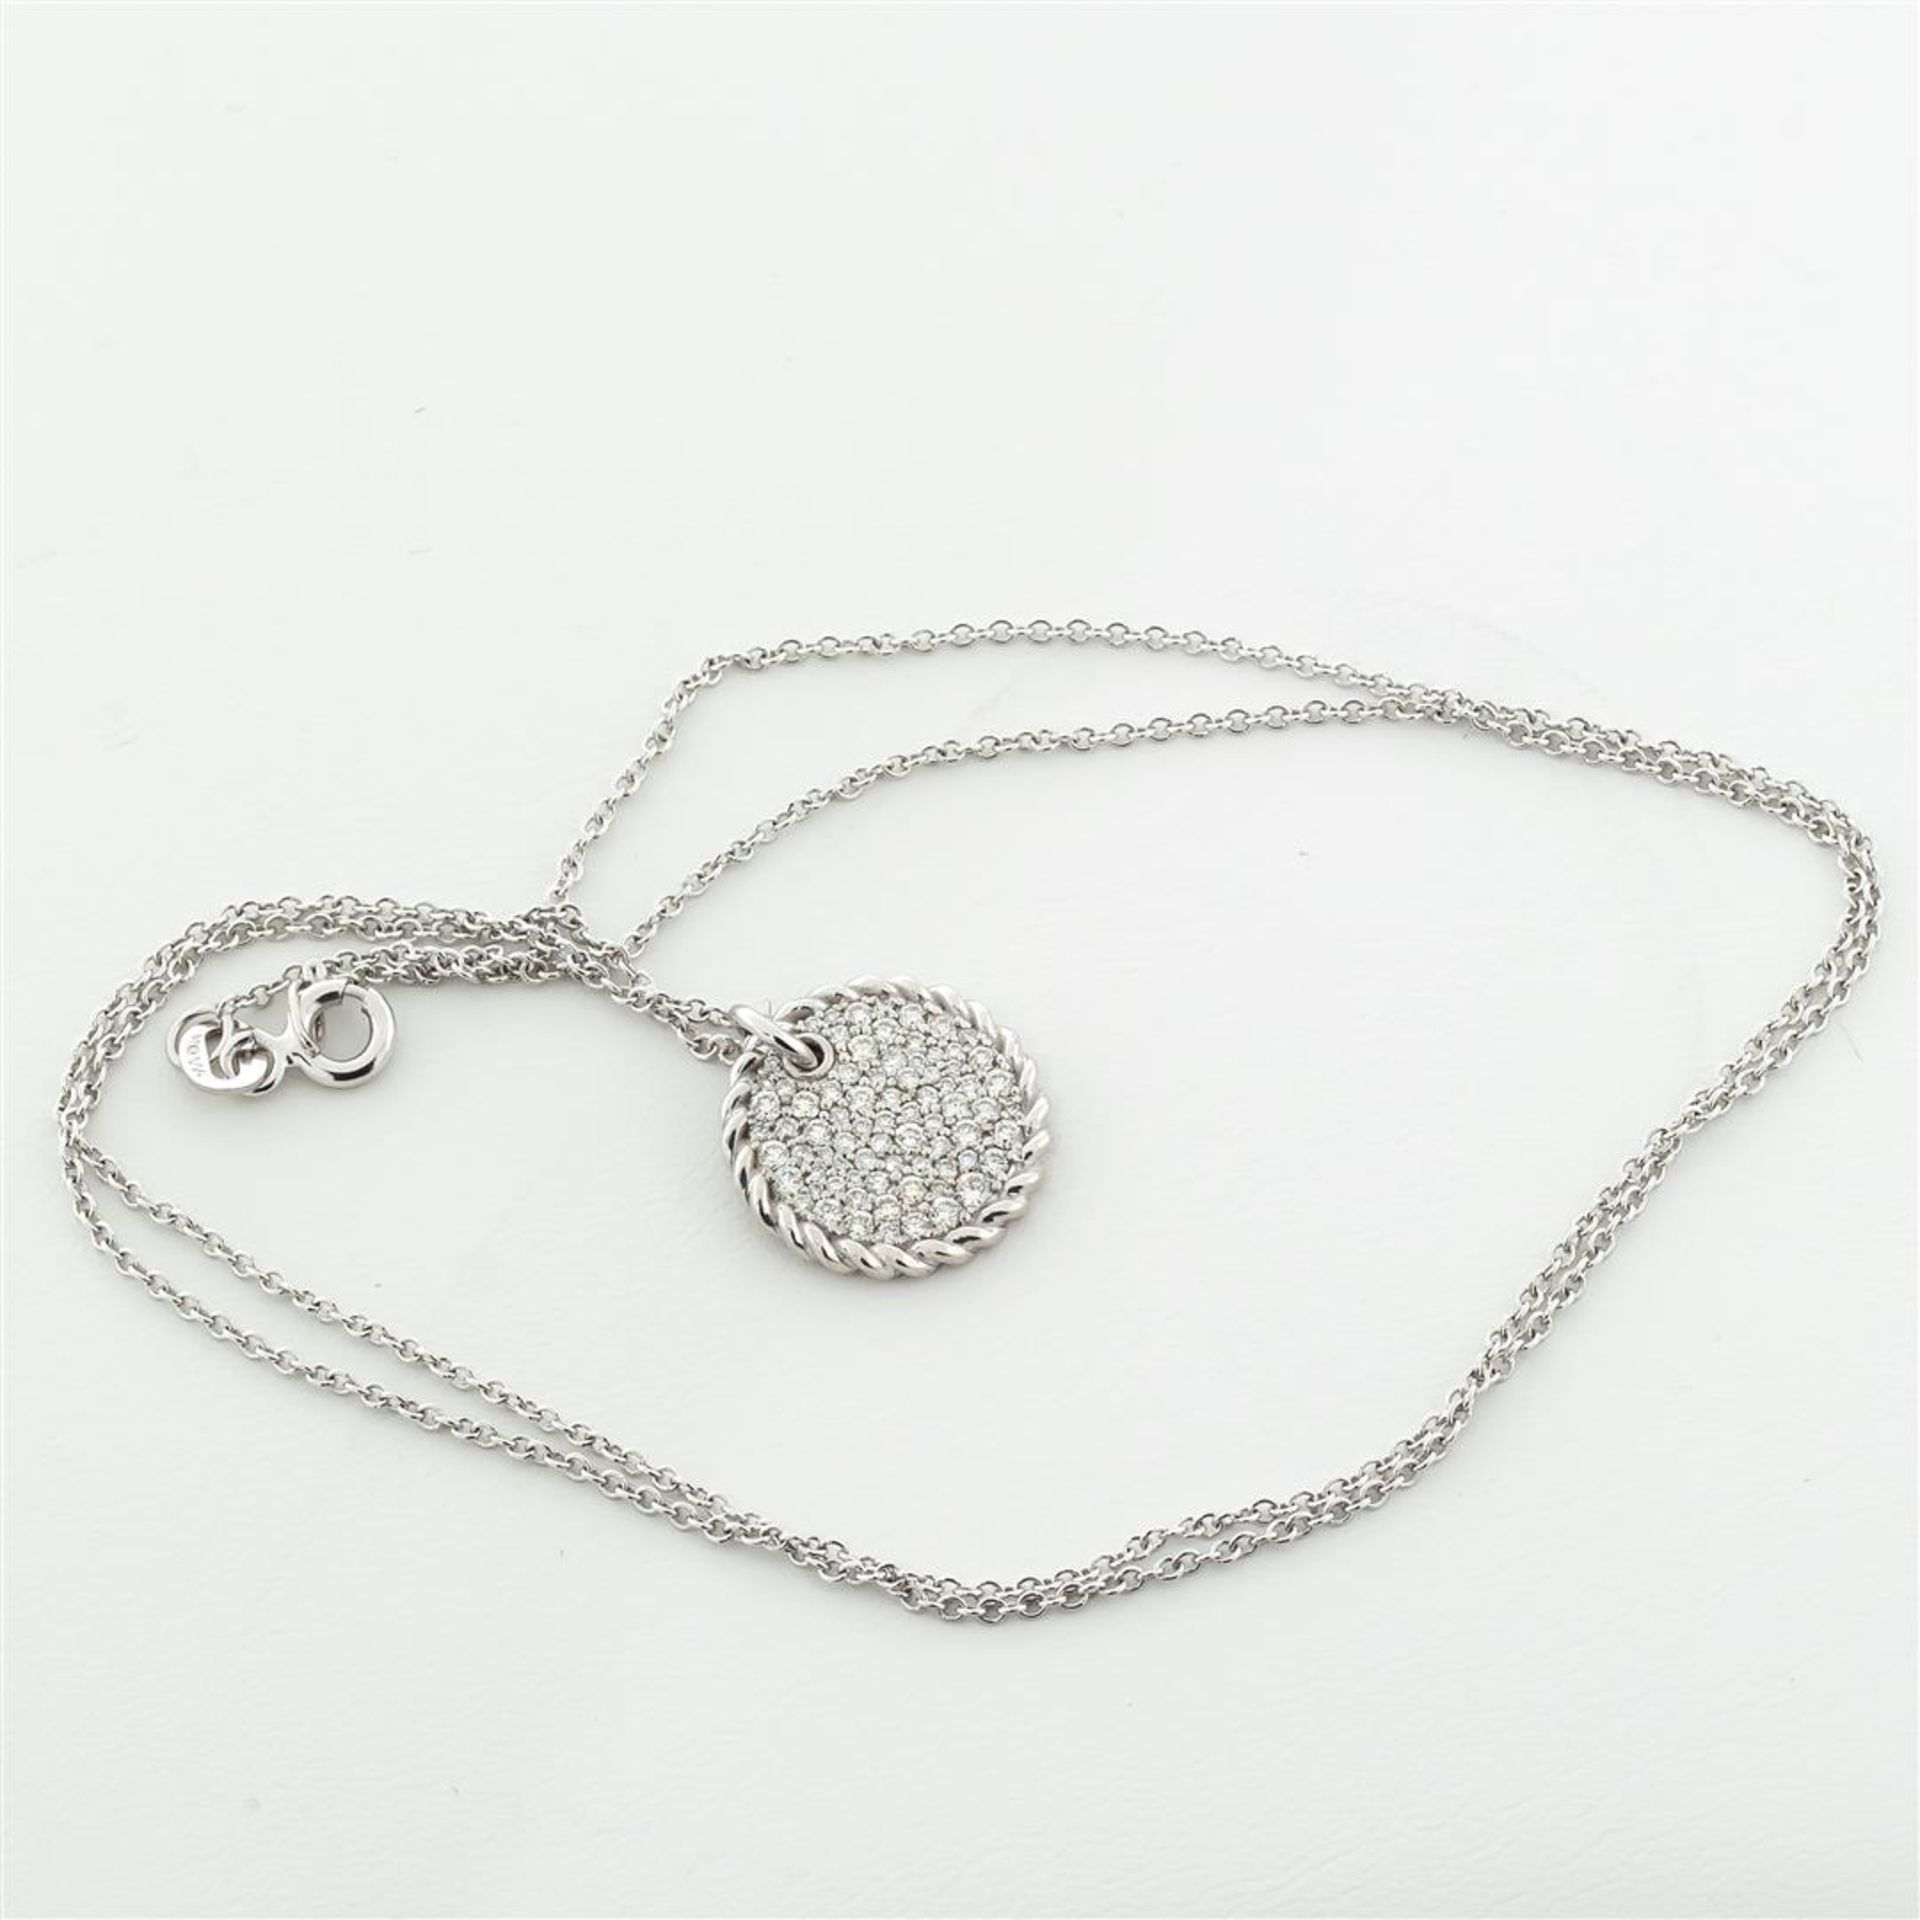 New 18k White Gold Diamond Cable Pendant with with 18K White Gold Chain - Image 3 of 7